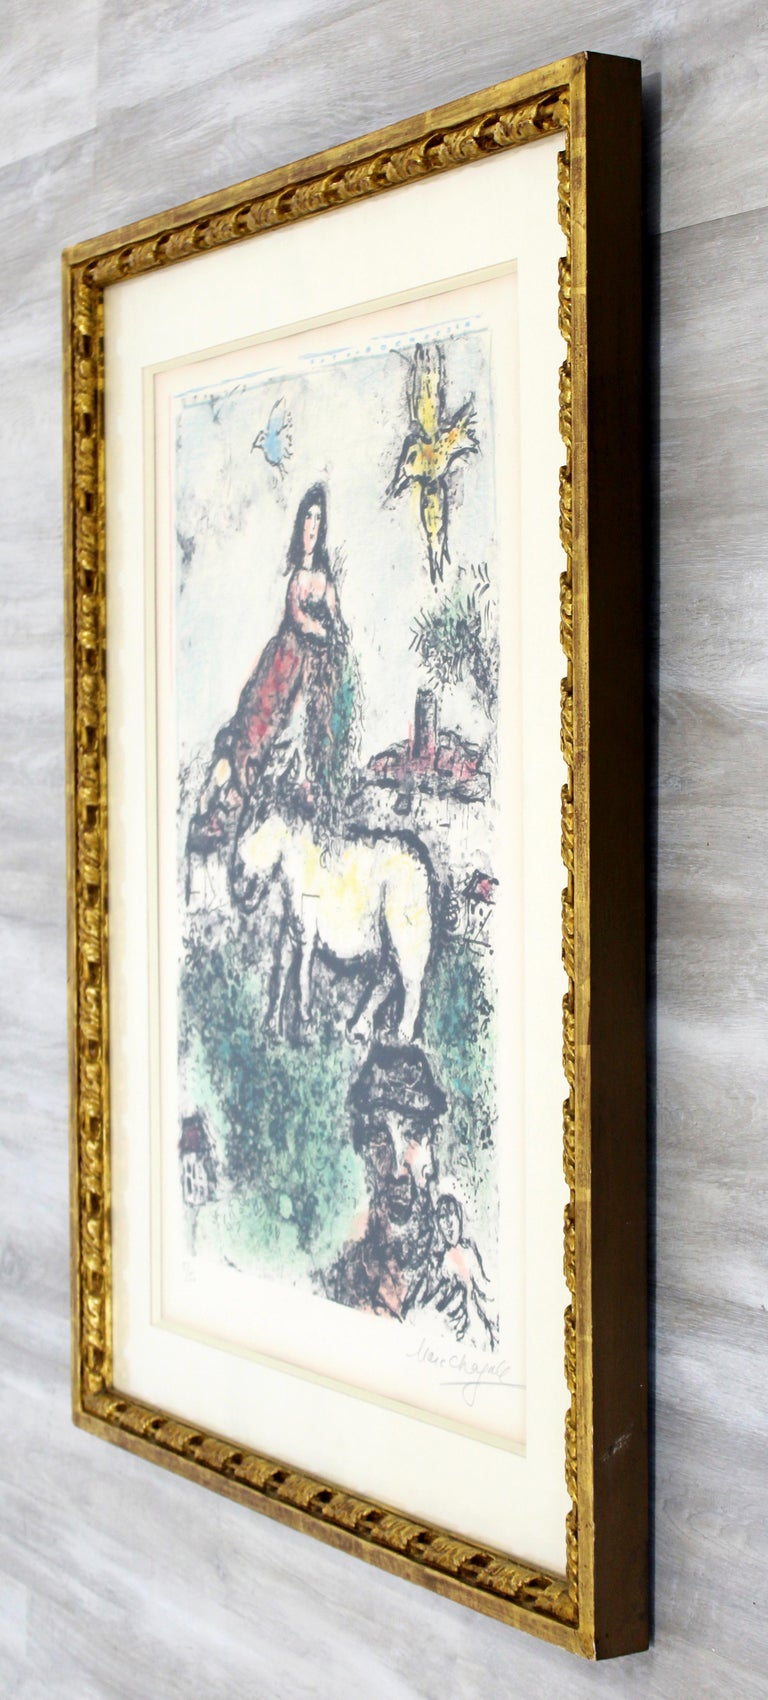 Mid-20th Century Mid-Century Modern Framed Marc Chagall Signed Lithograph Un jardin perdu 5/50 For Sale